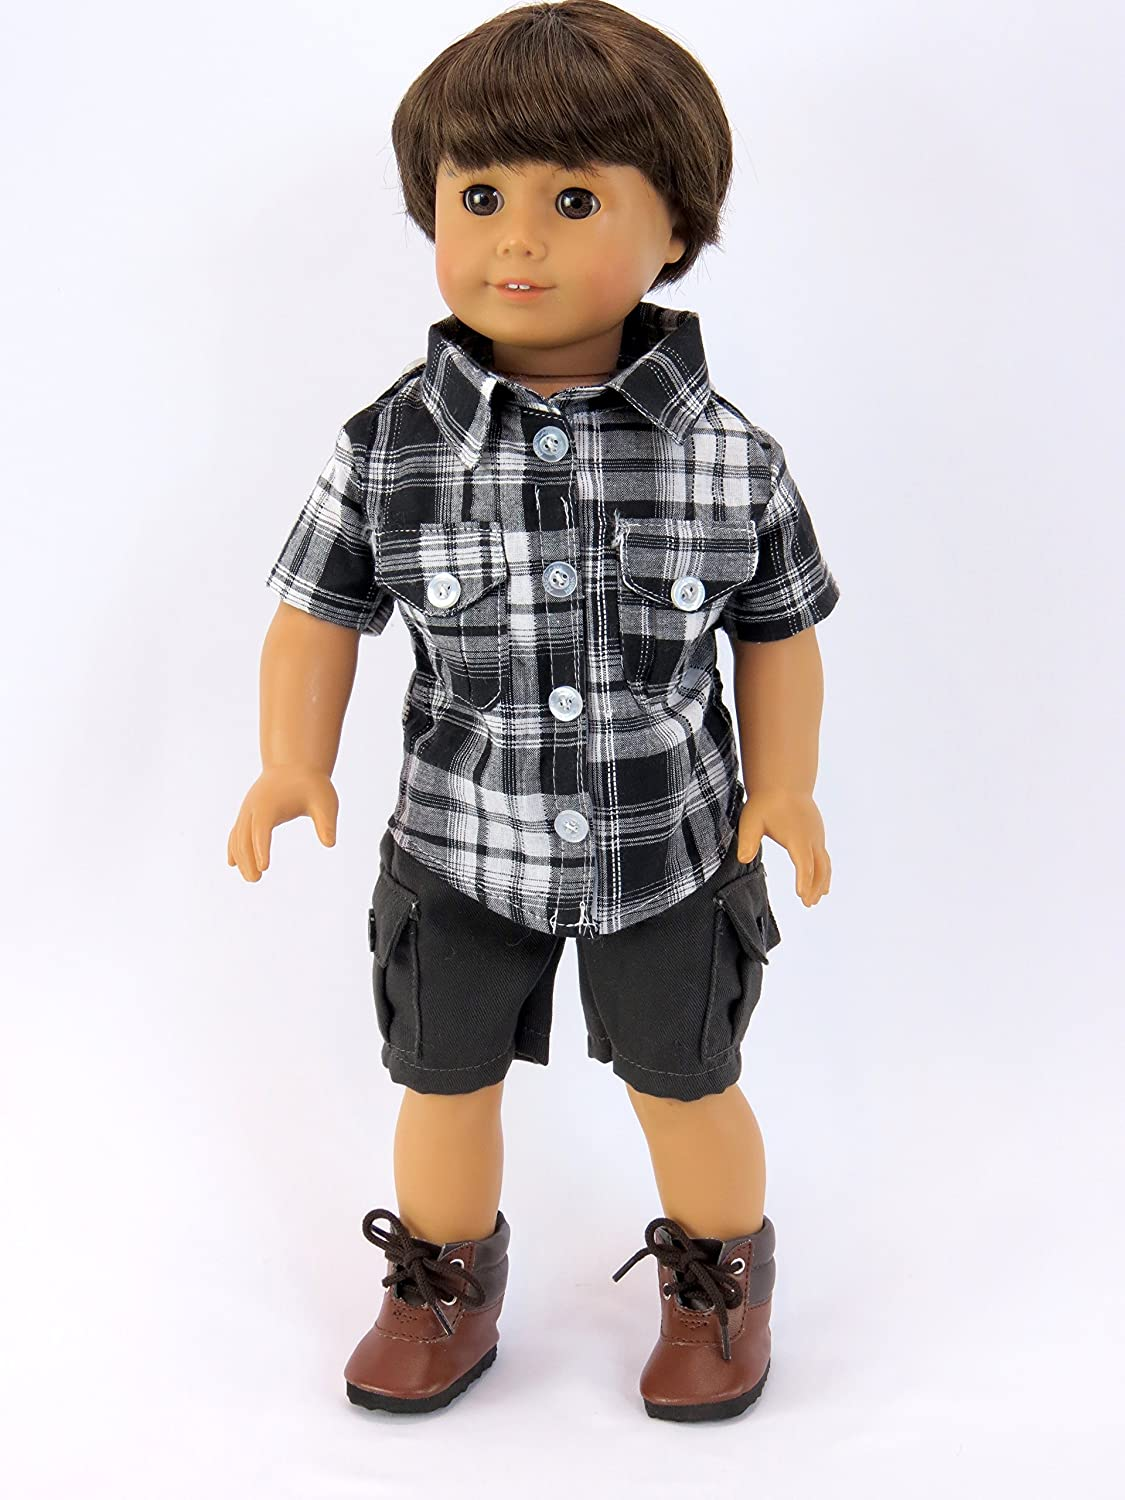 Grey and Black Boy Outfit for 18 inch Dolls American Fashion World